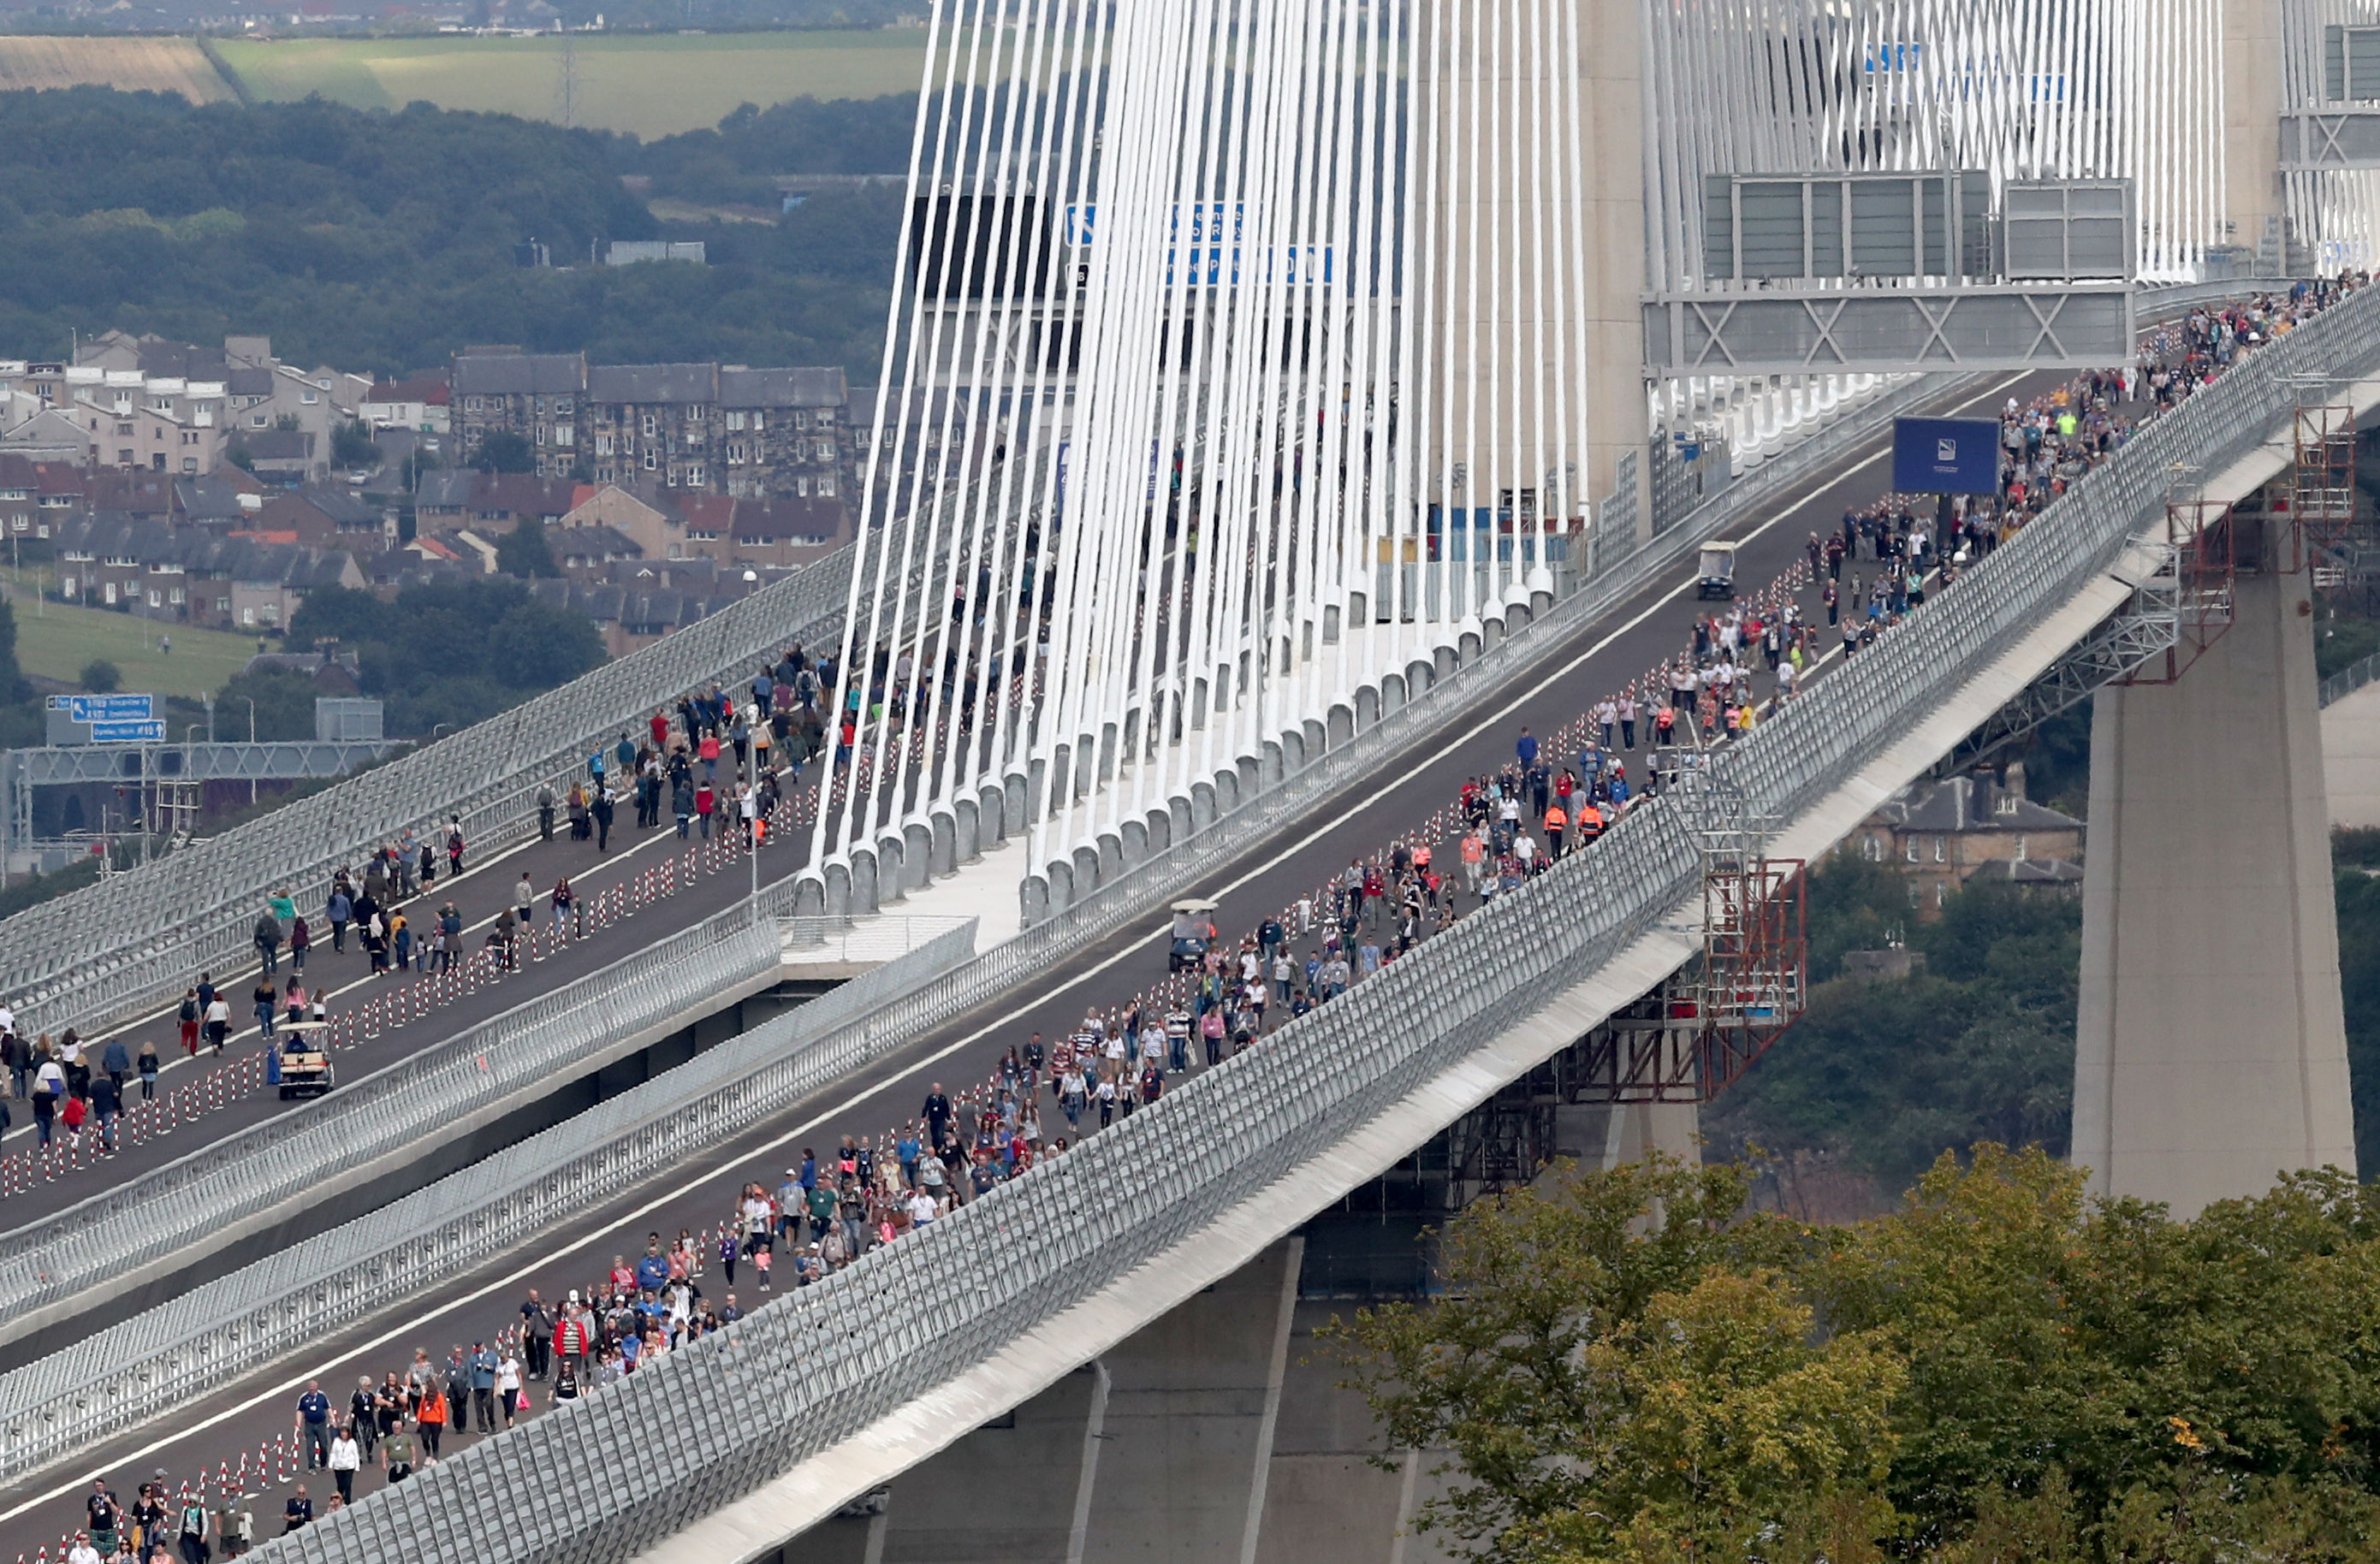 Competition-winners walk across the Queensferry Crossing during a one-off opportunity to cross the new 1.7-mile bridge by foot